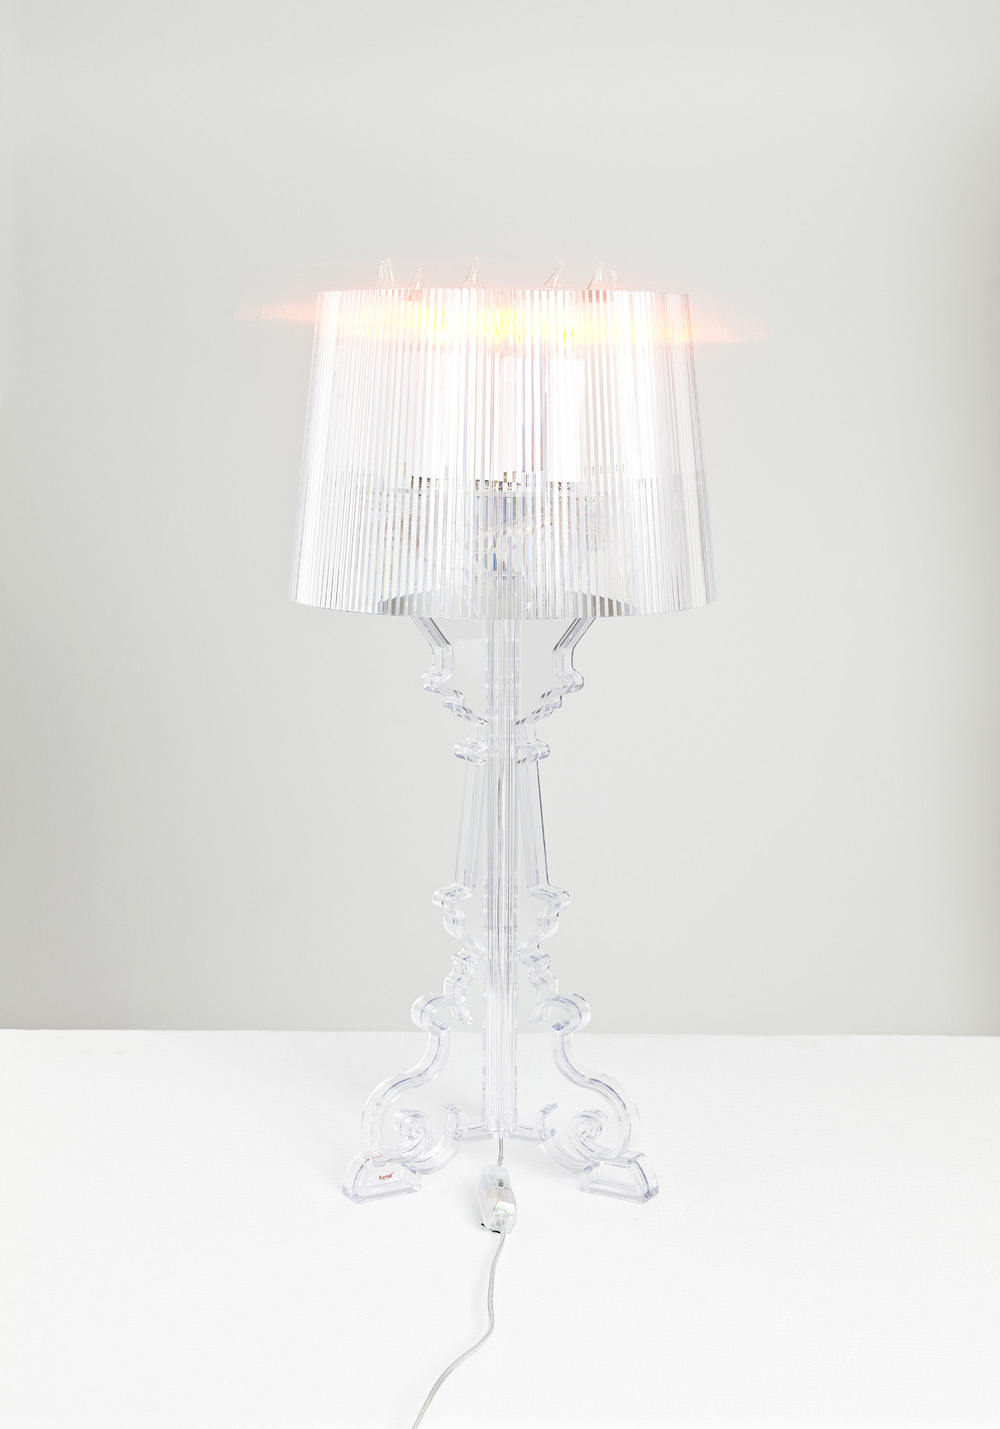 maison_objet_2014_kartell_bourgie_collaboration_10